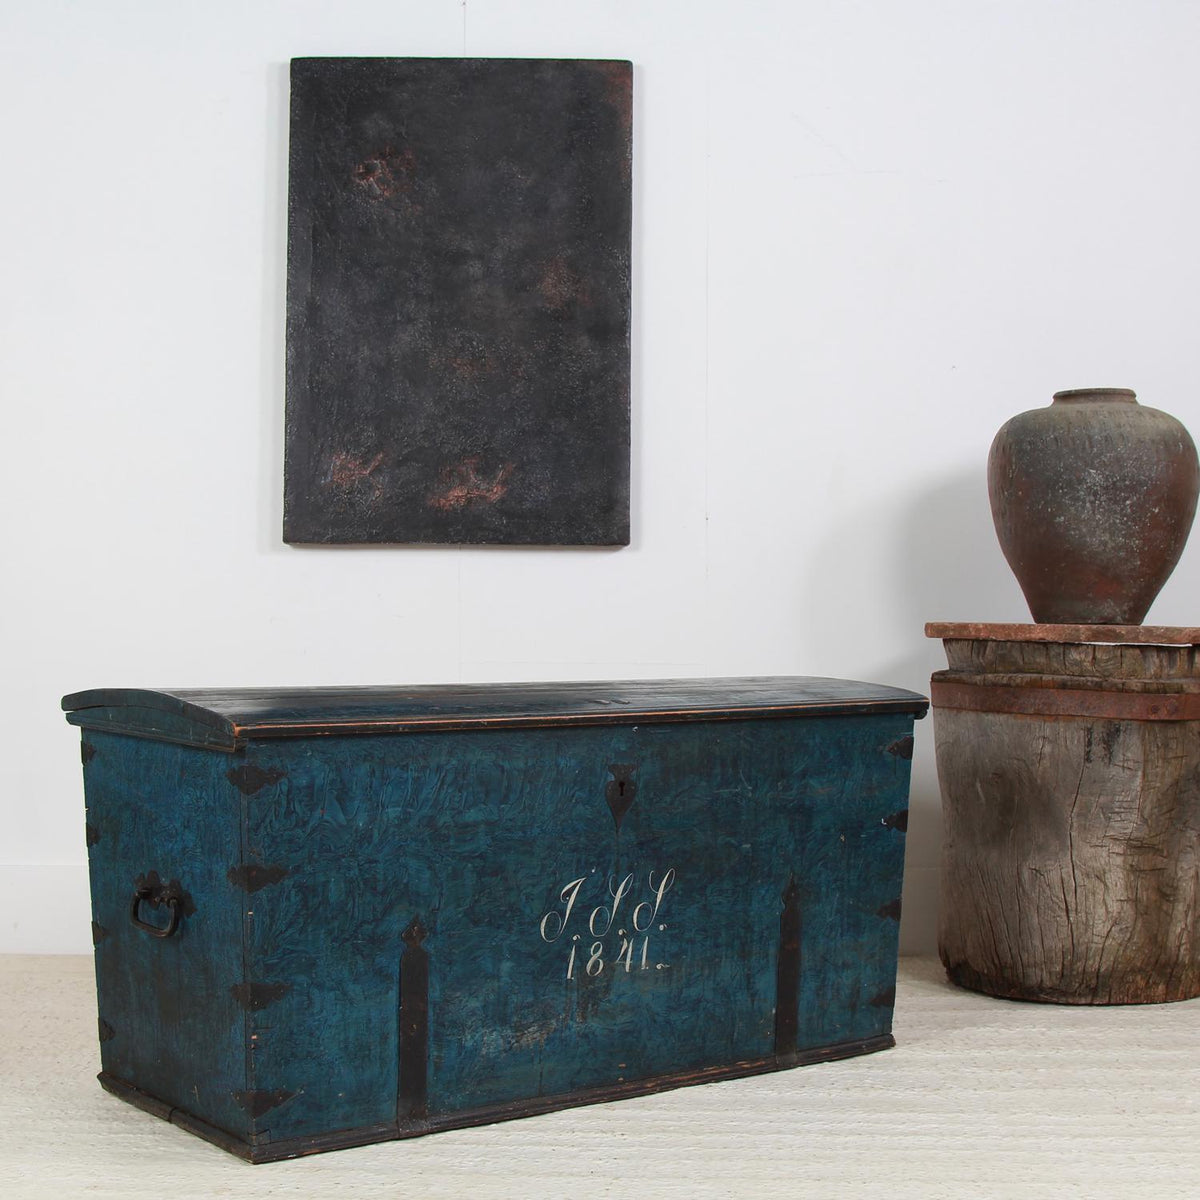 Exceptionally Large Swedish Original Hand Painted Marriage Trunk Dated 1841